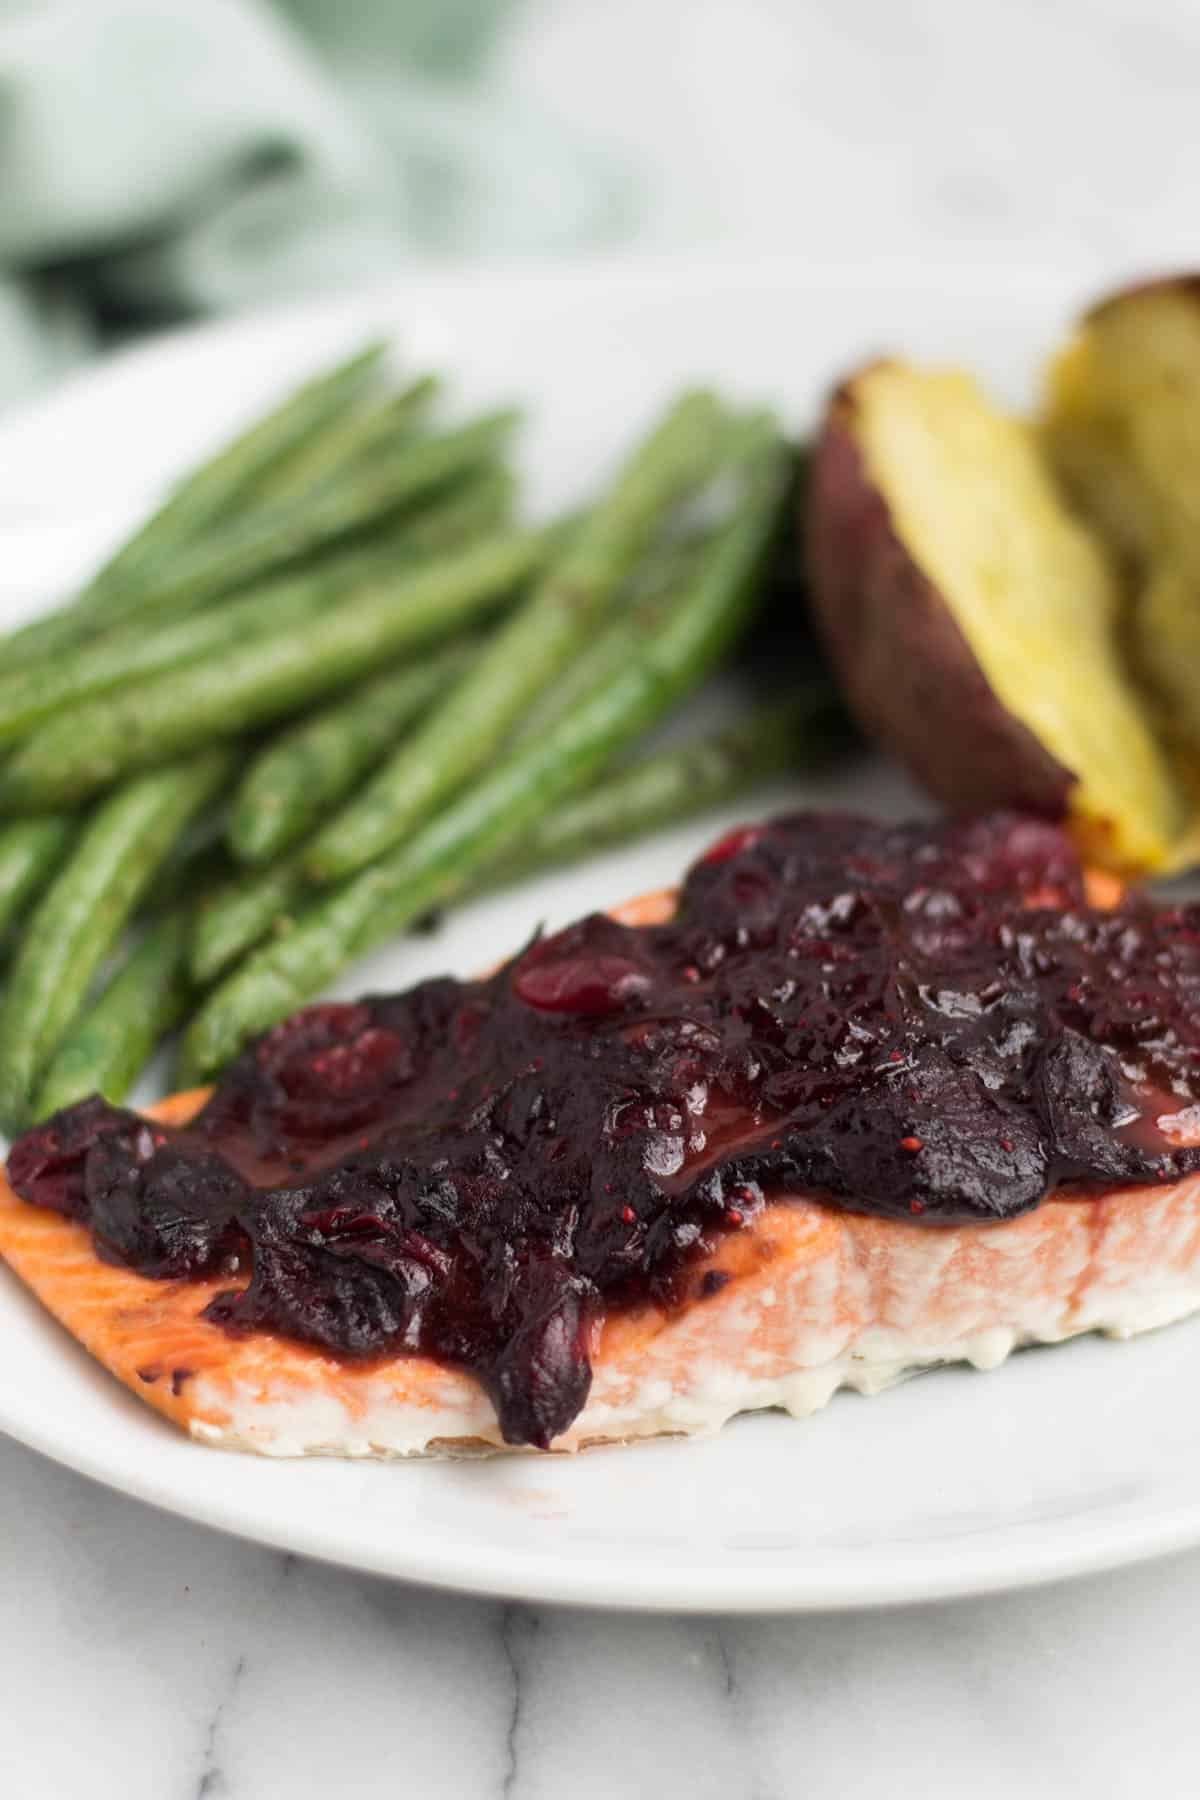 An easy and festive seafood dish, thisCranberry Balsamic Roasted Salmon takes 15 minutes, 4 ingredients, and is a crowd pleaser for the holidays - paleo and Whole30 approved! - Eat the Gains